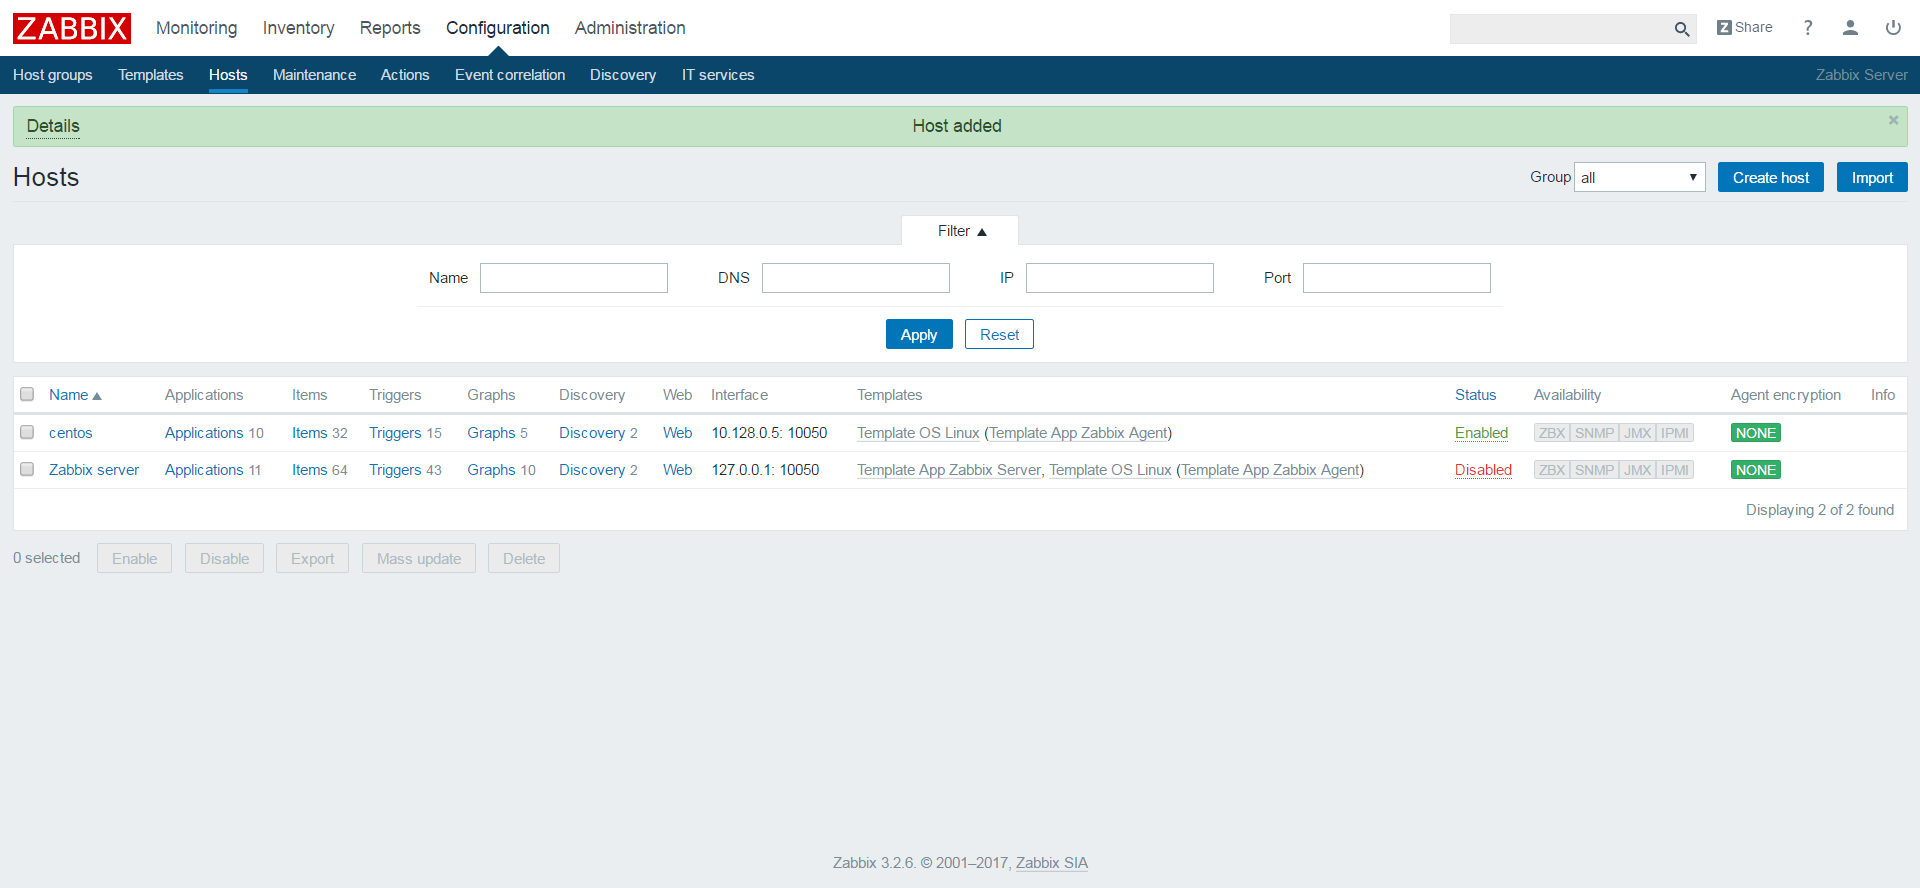 Add a Client Node to Zabbix Server for Monitoring - List of Hosts